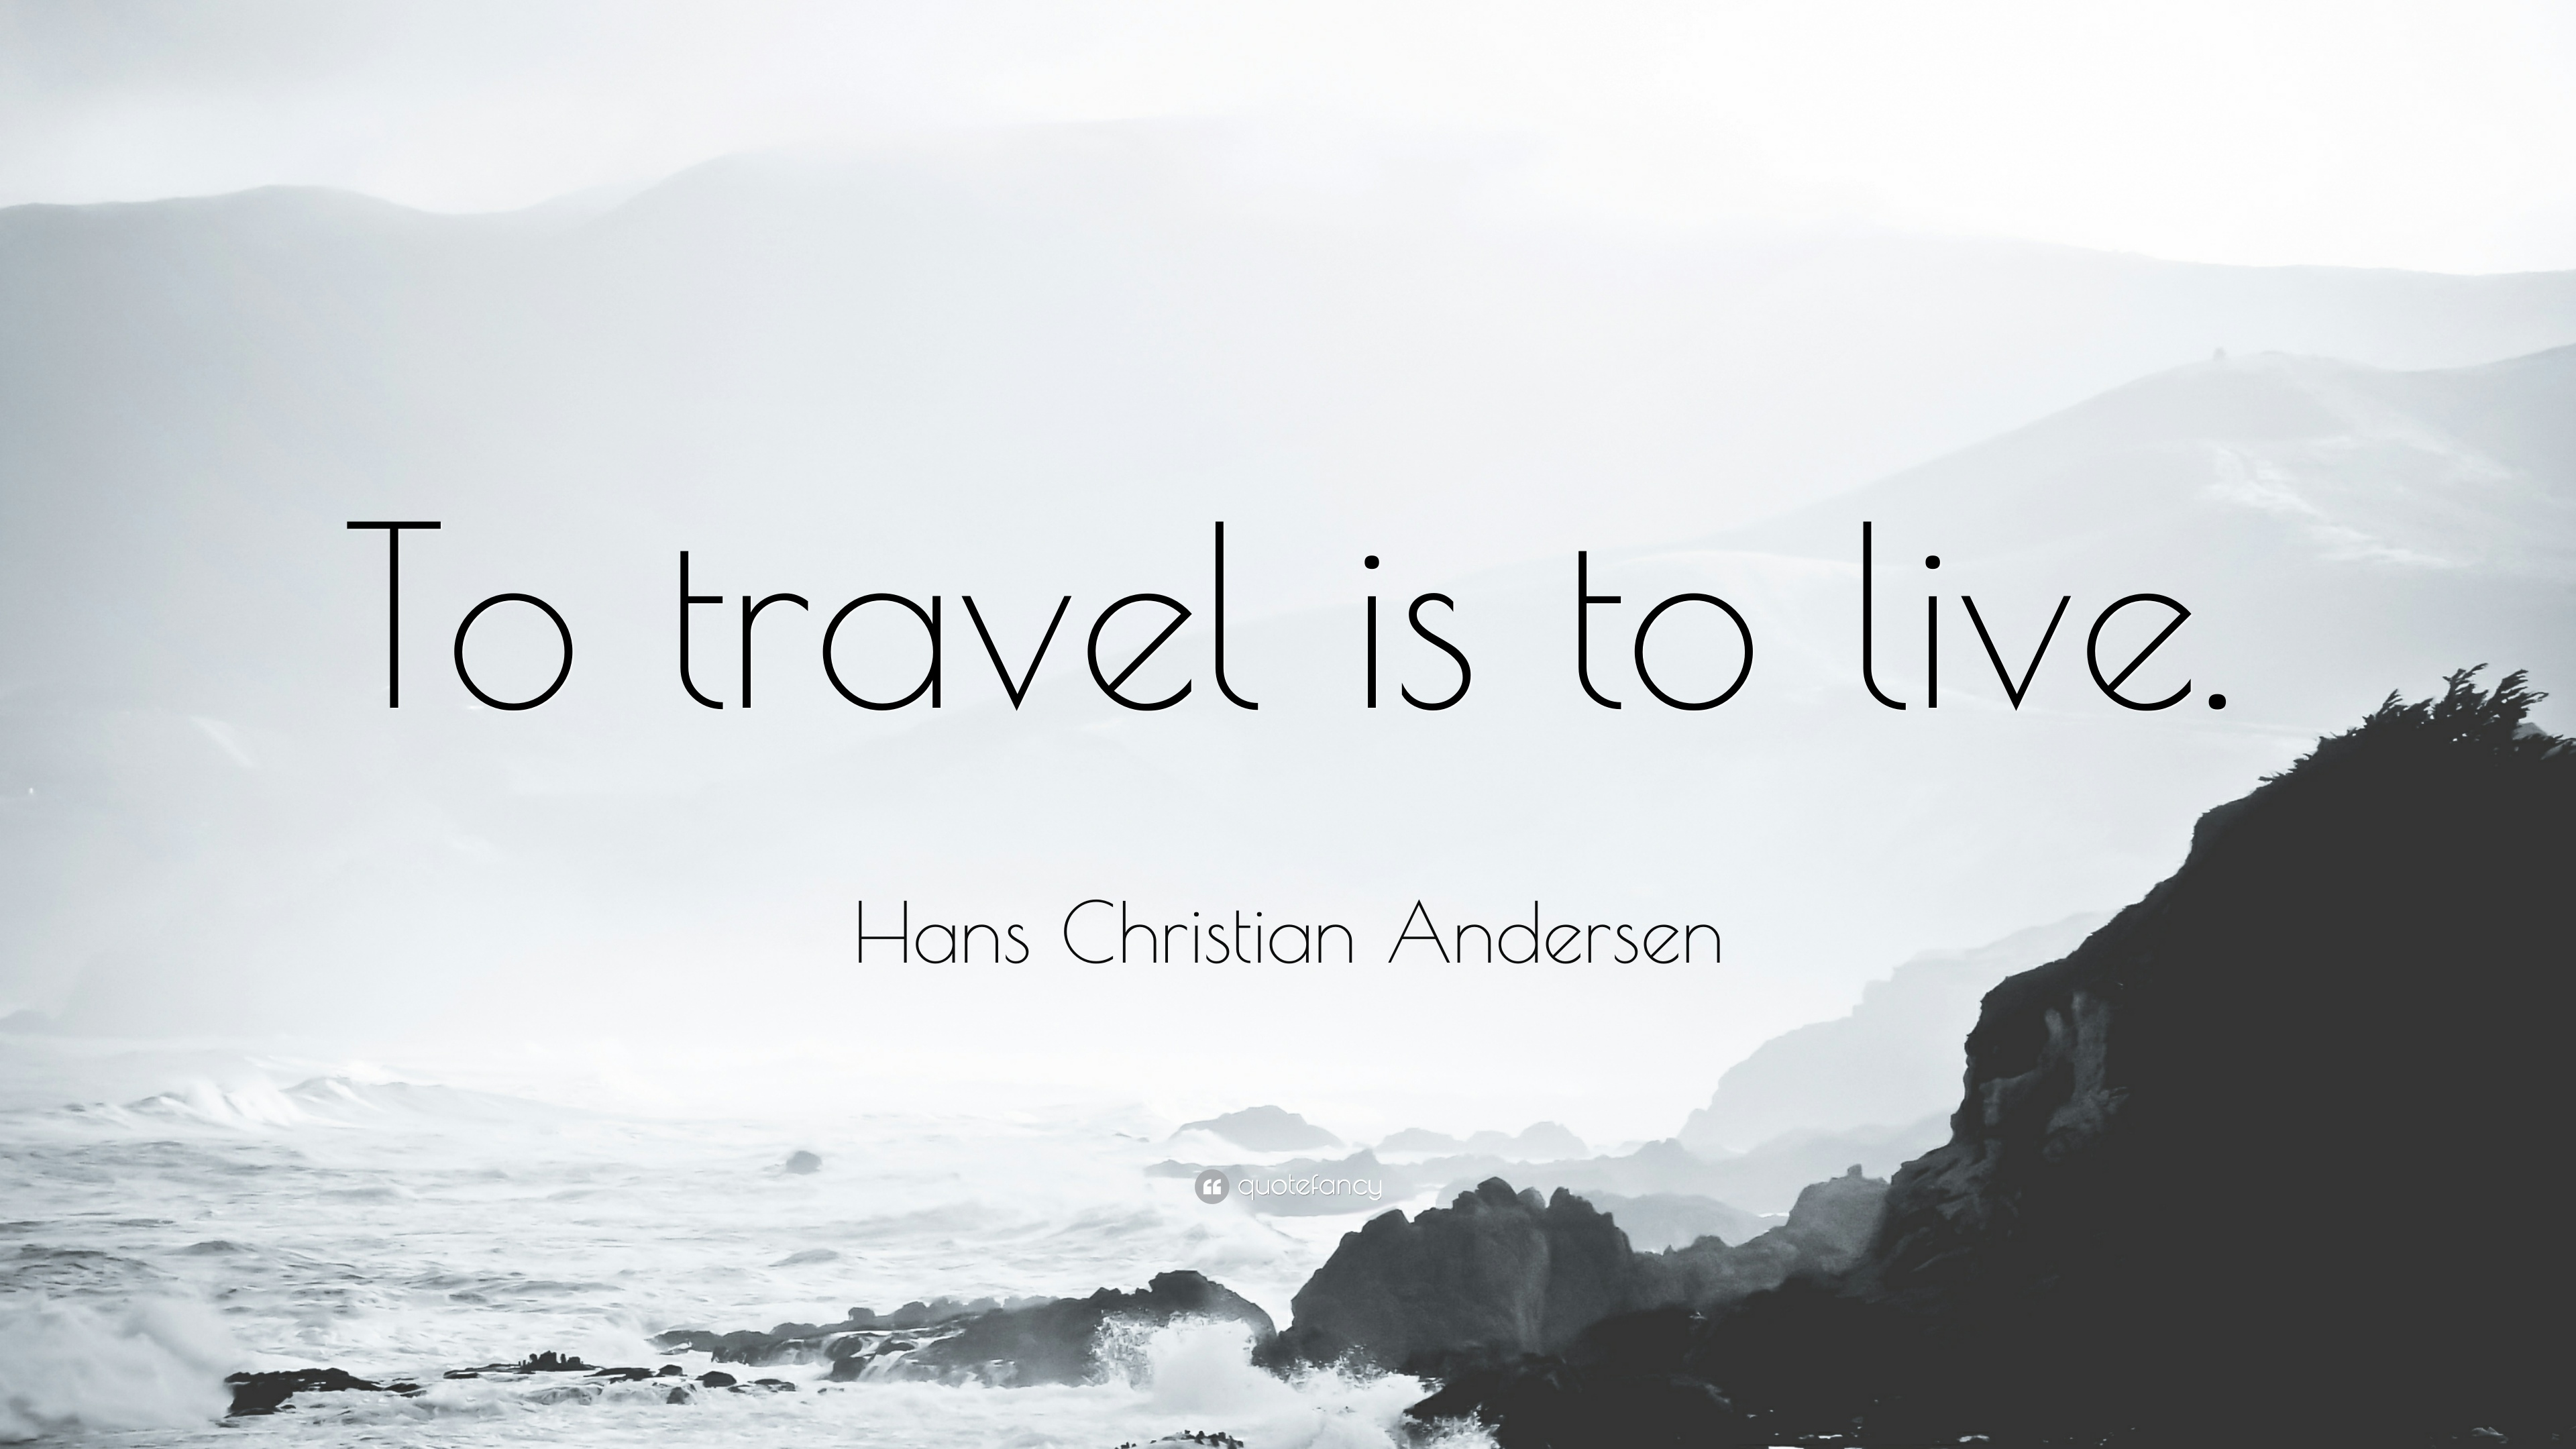 Travel Quotes: U201cTo Travel Is To Live.u201d U2014 Hans Christian Andersen